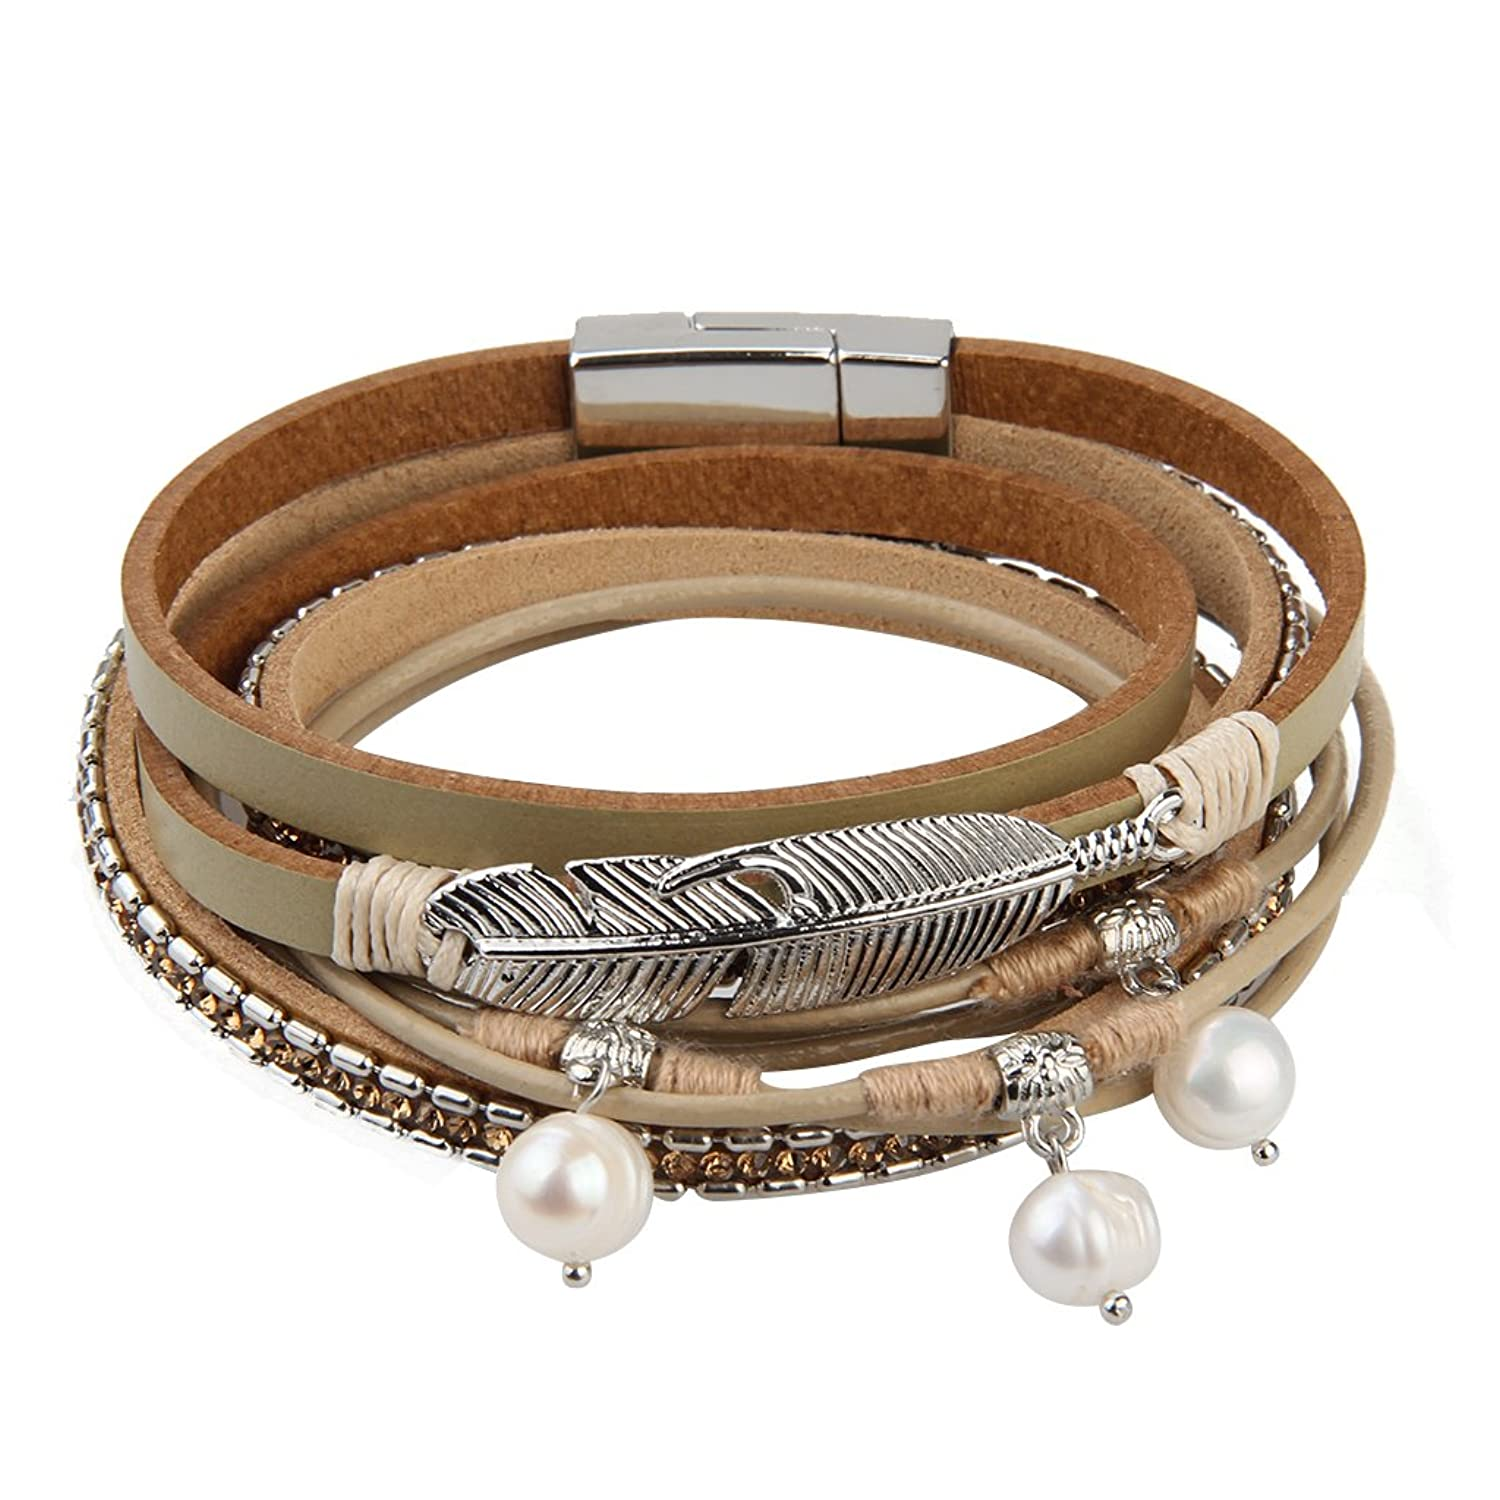 Casual Leather Bracelet For Women Pearl Feather Braided Bangle Jewelry For Valentine's Day Gift JTCmwCz